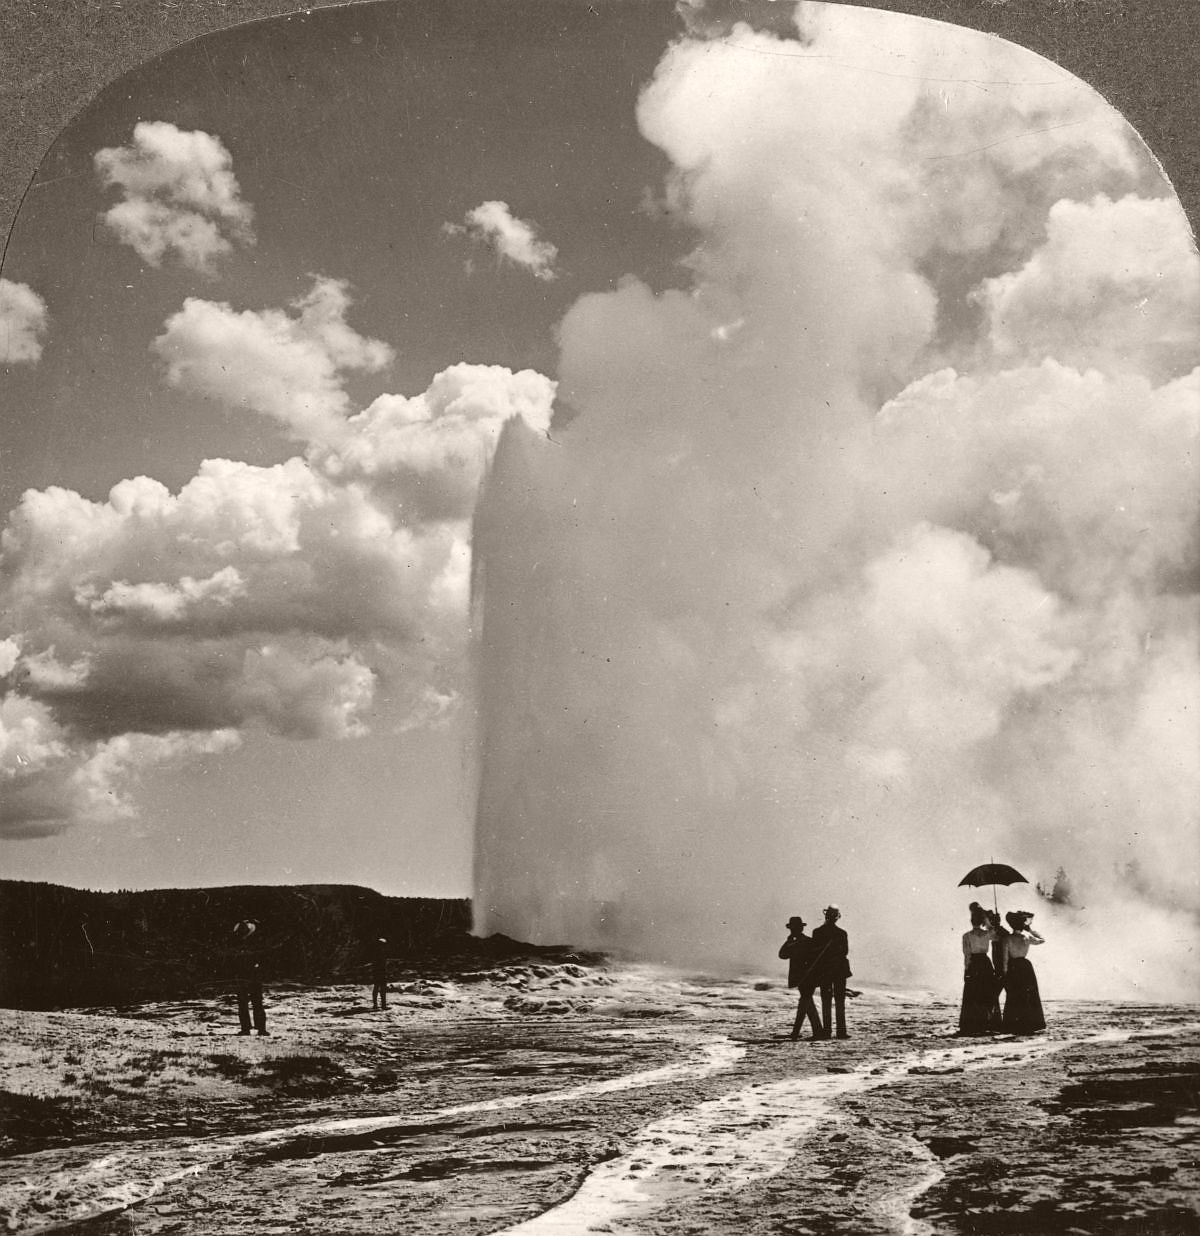 Tourists at Old Faithful in Yellowstone, 1901. (The Print Collector/Print Collector/Getty Images)